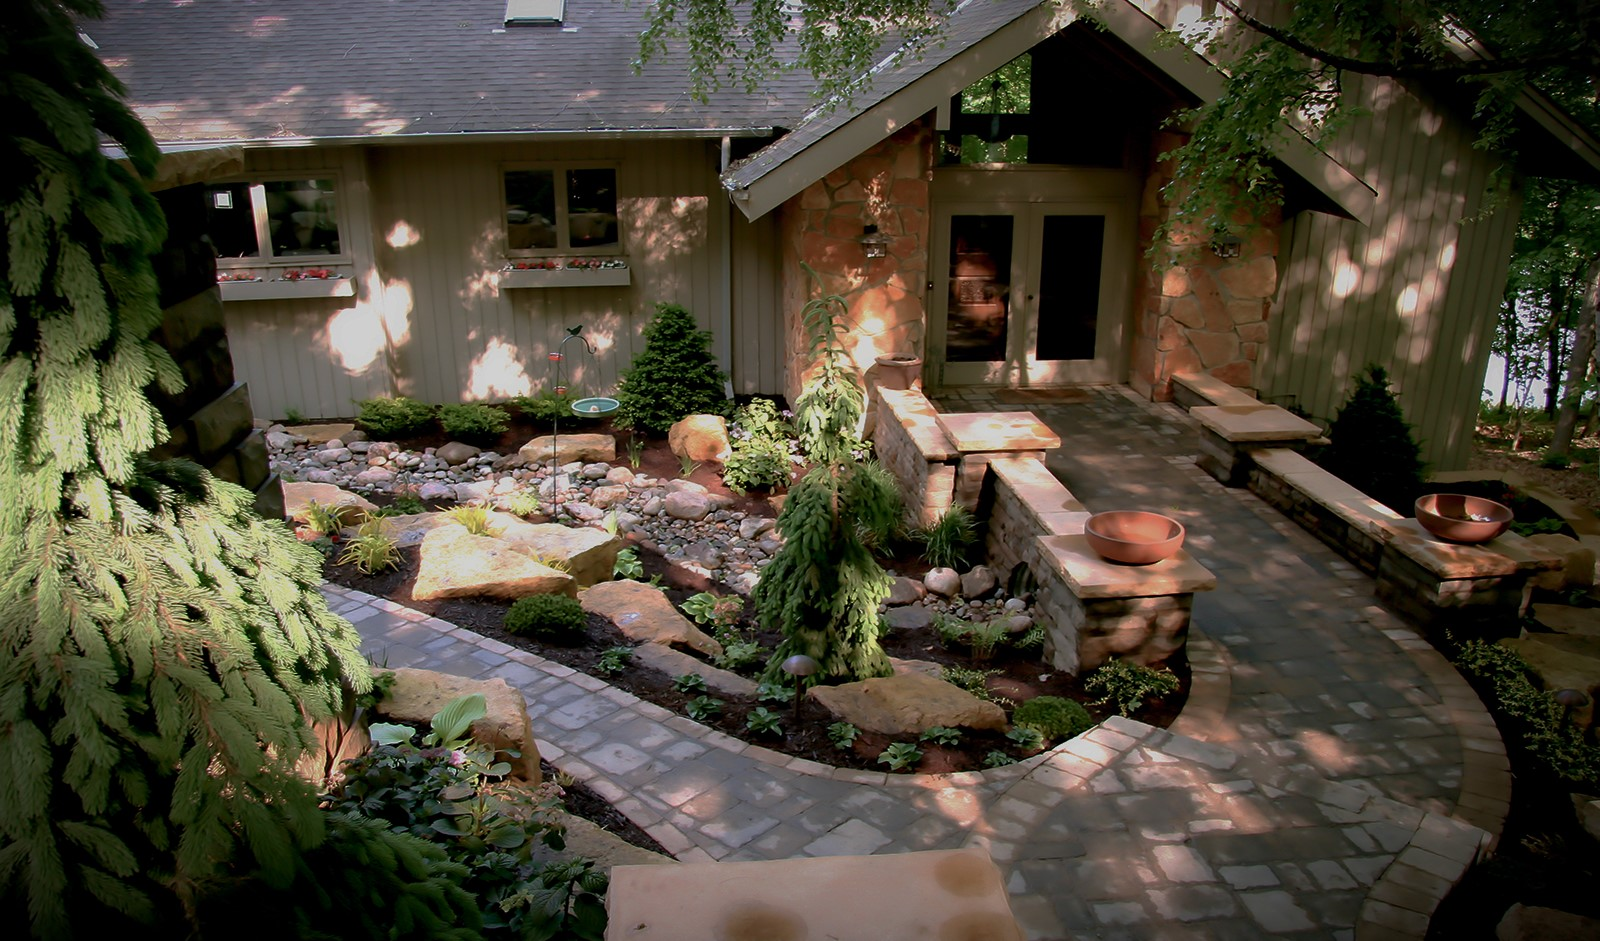 Land Design MN | Landscape Design & Build Company | Minneapolis MN ...